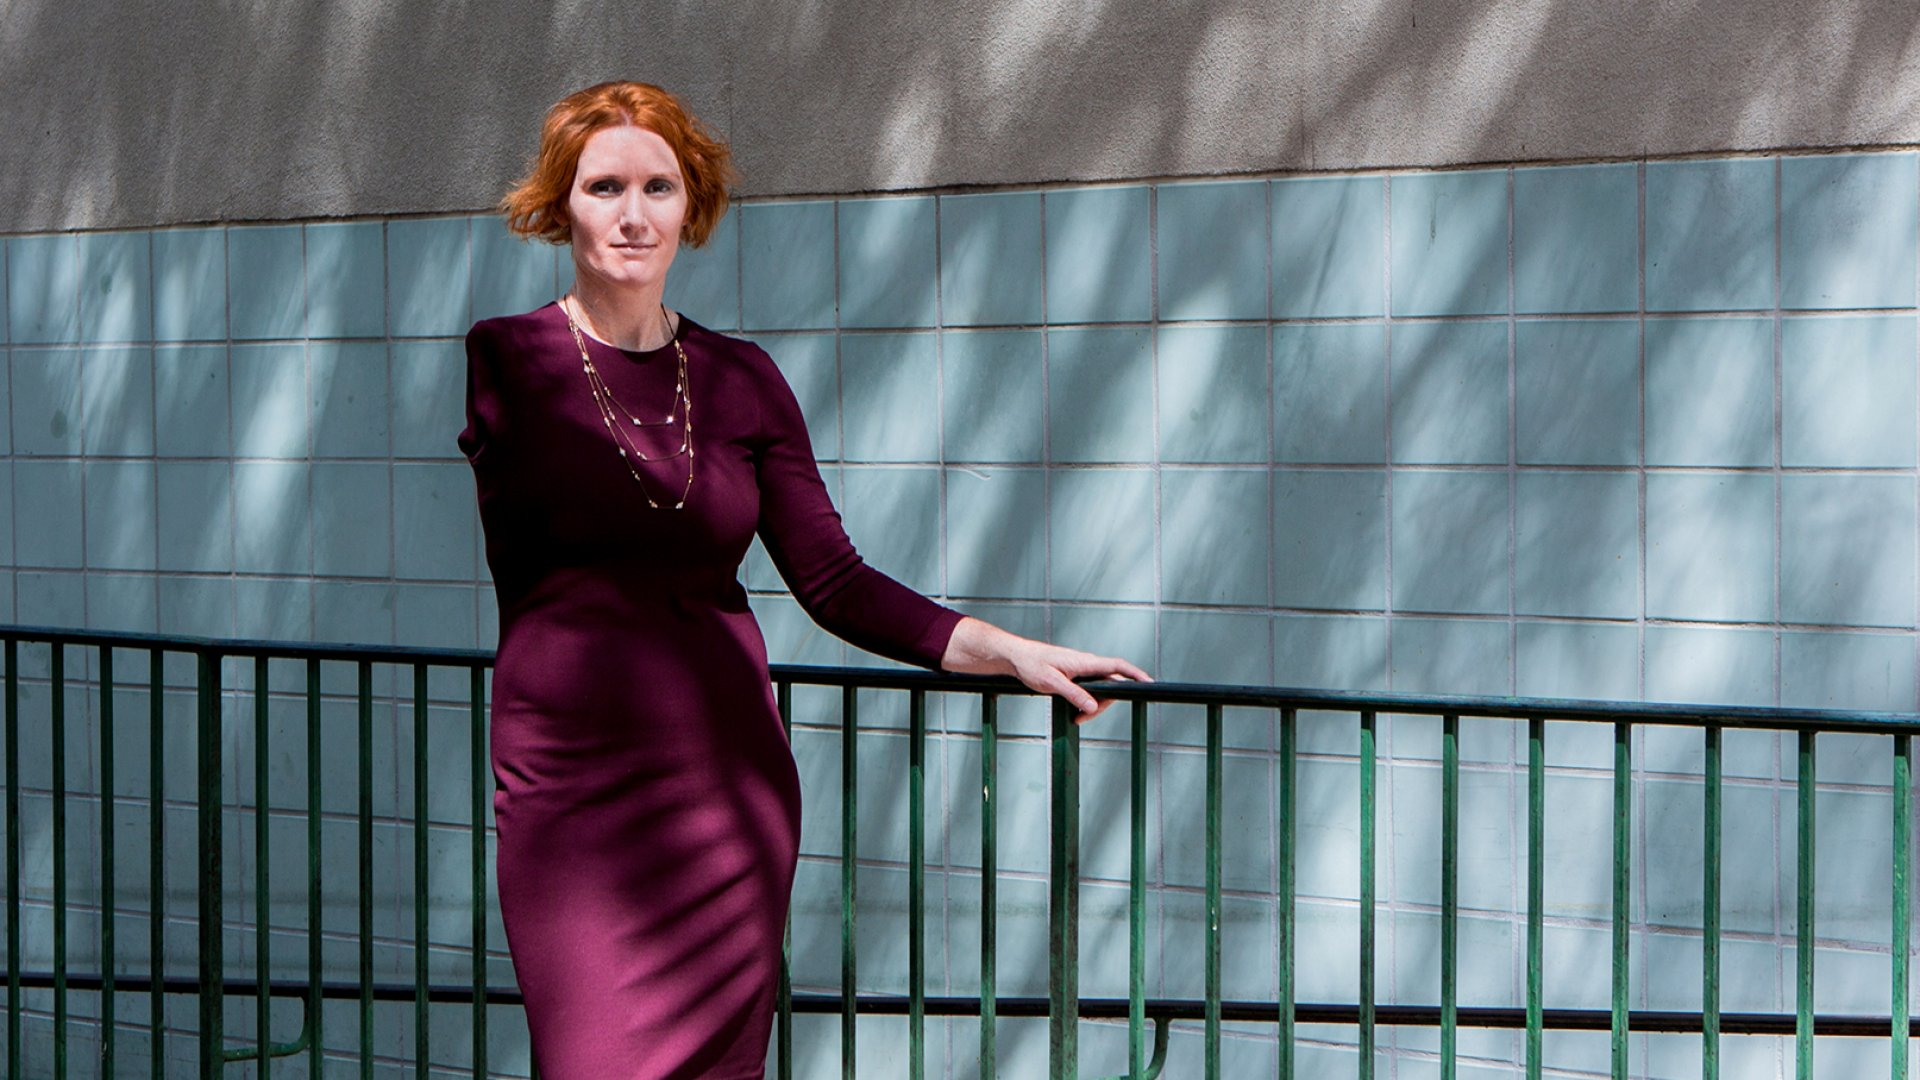 Dawn Halfaker realized that military officers and entrepreneurs face similar leadership issues.